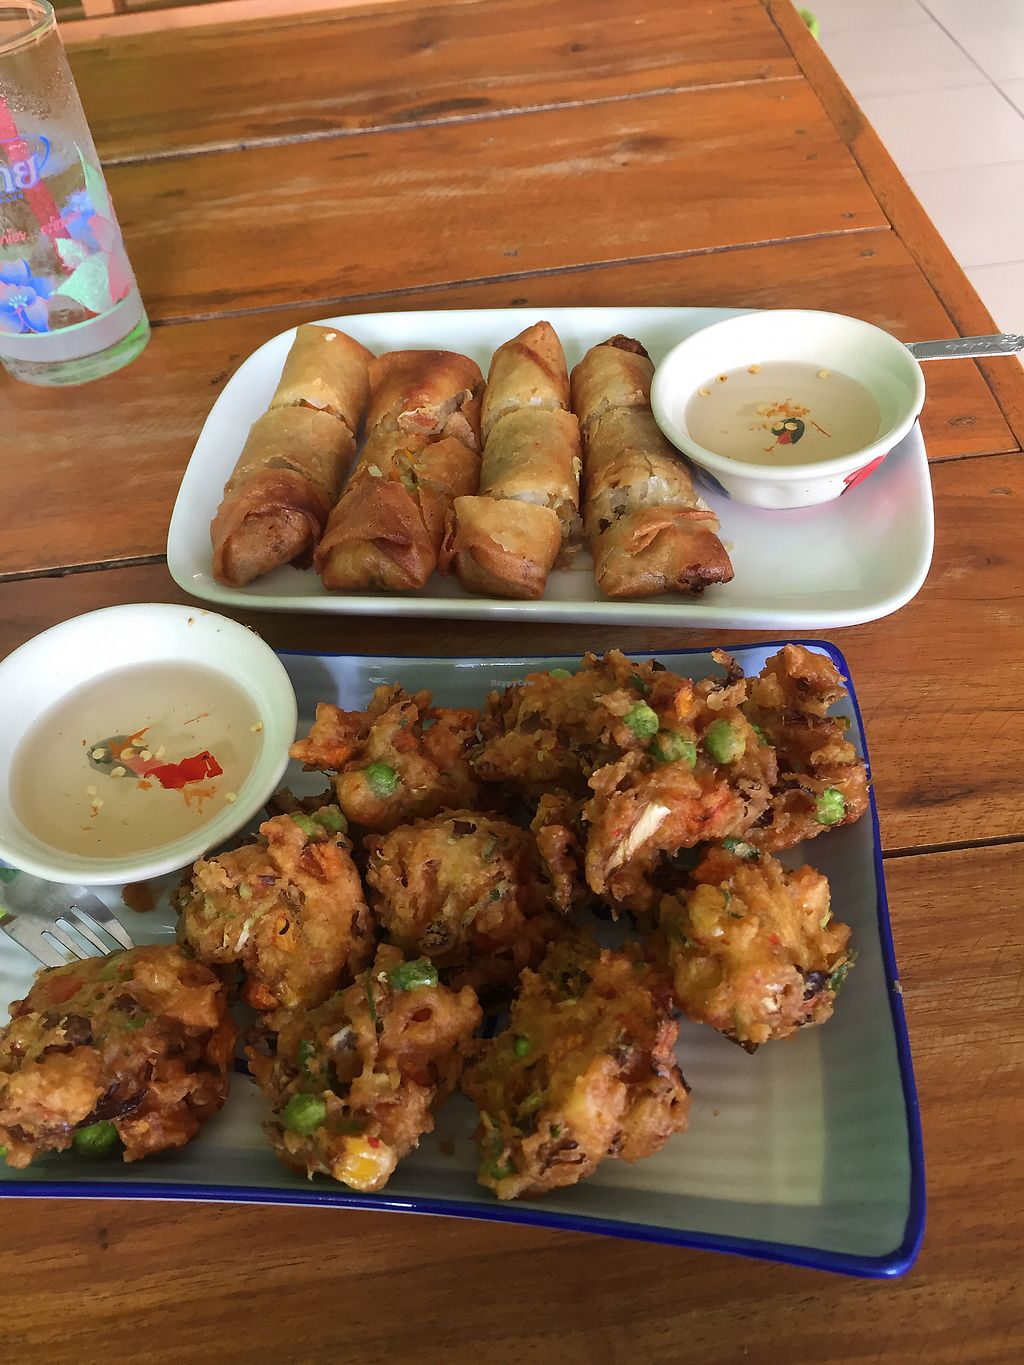 """Photo of Pattaya Vegetarian Food  by <a href=""""/members/profile/PaulBown"""">PaulBown</a> <br/>some  nice fried vegetables and spring rolls <br/> August 9, 2017  - <a href='/contact/abuse/image/21688/290736'>Report</a>"""